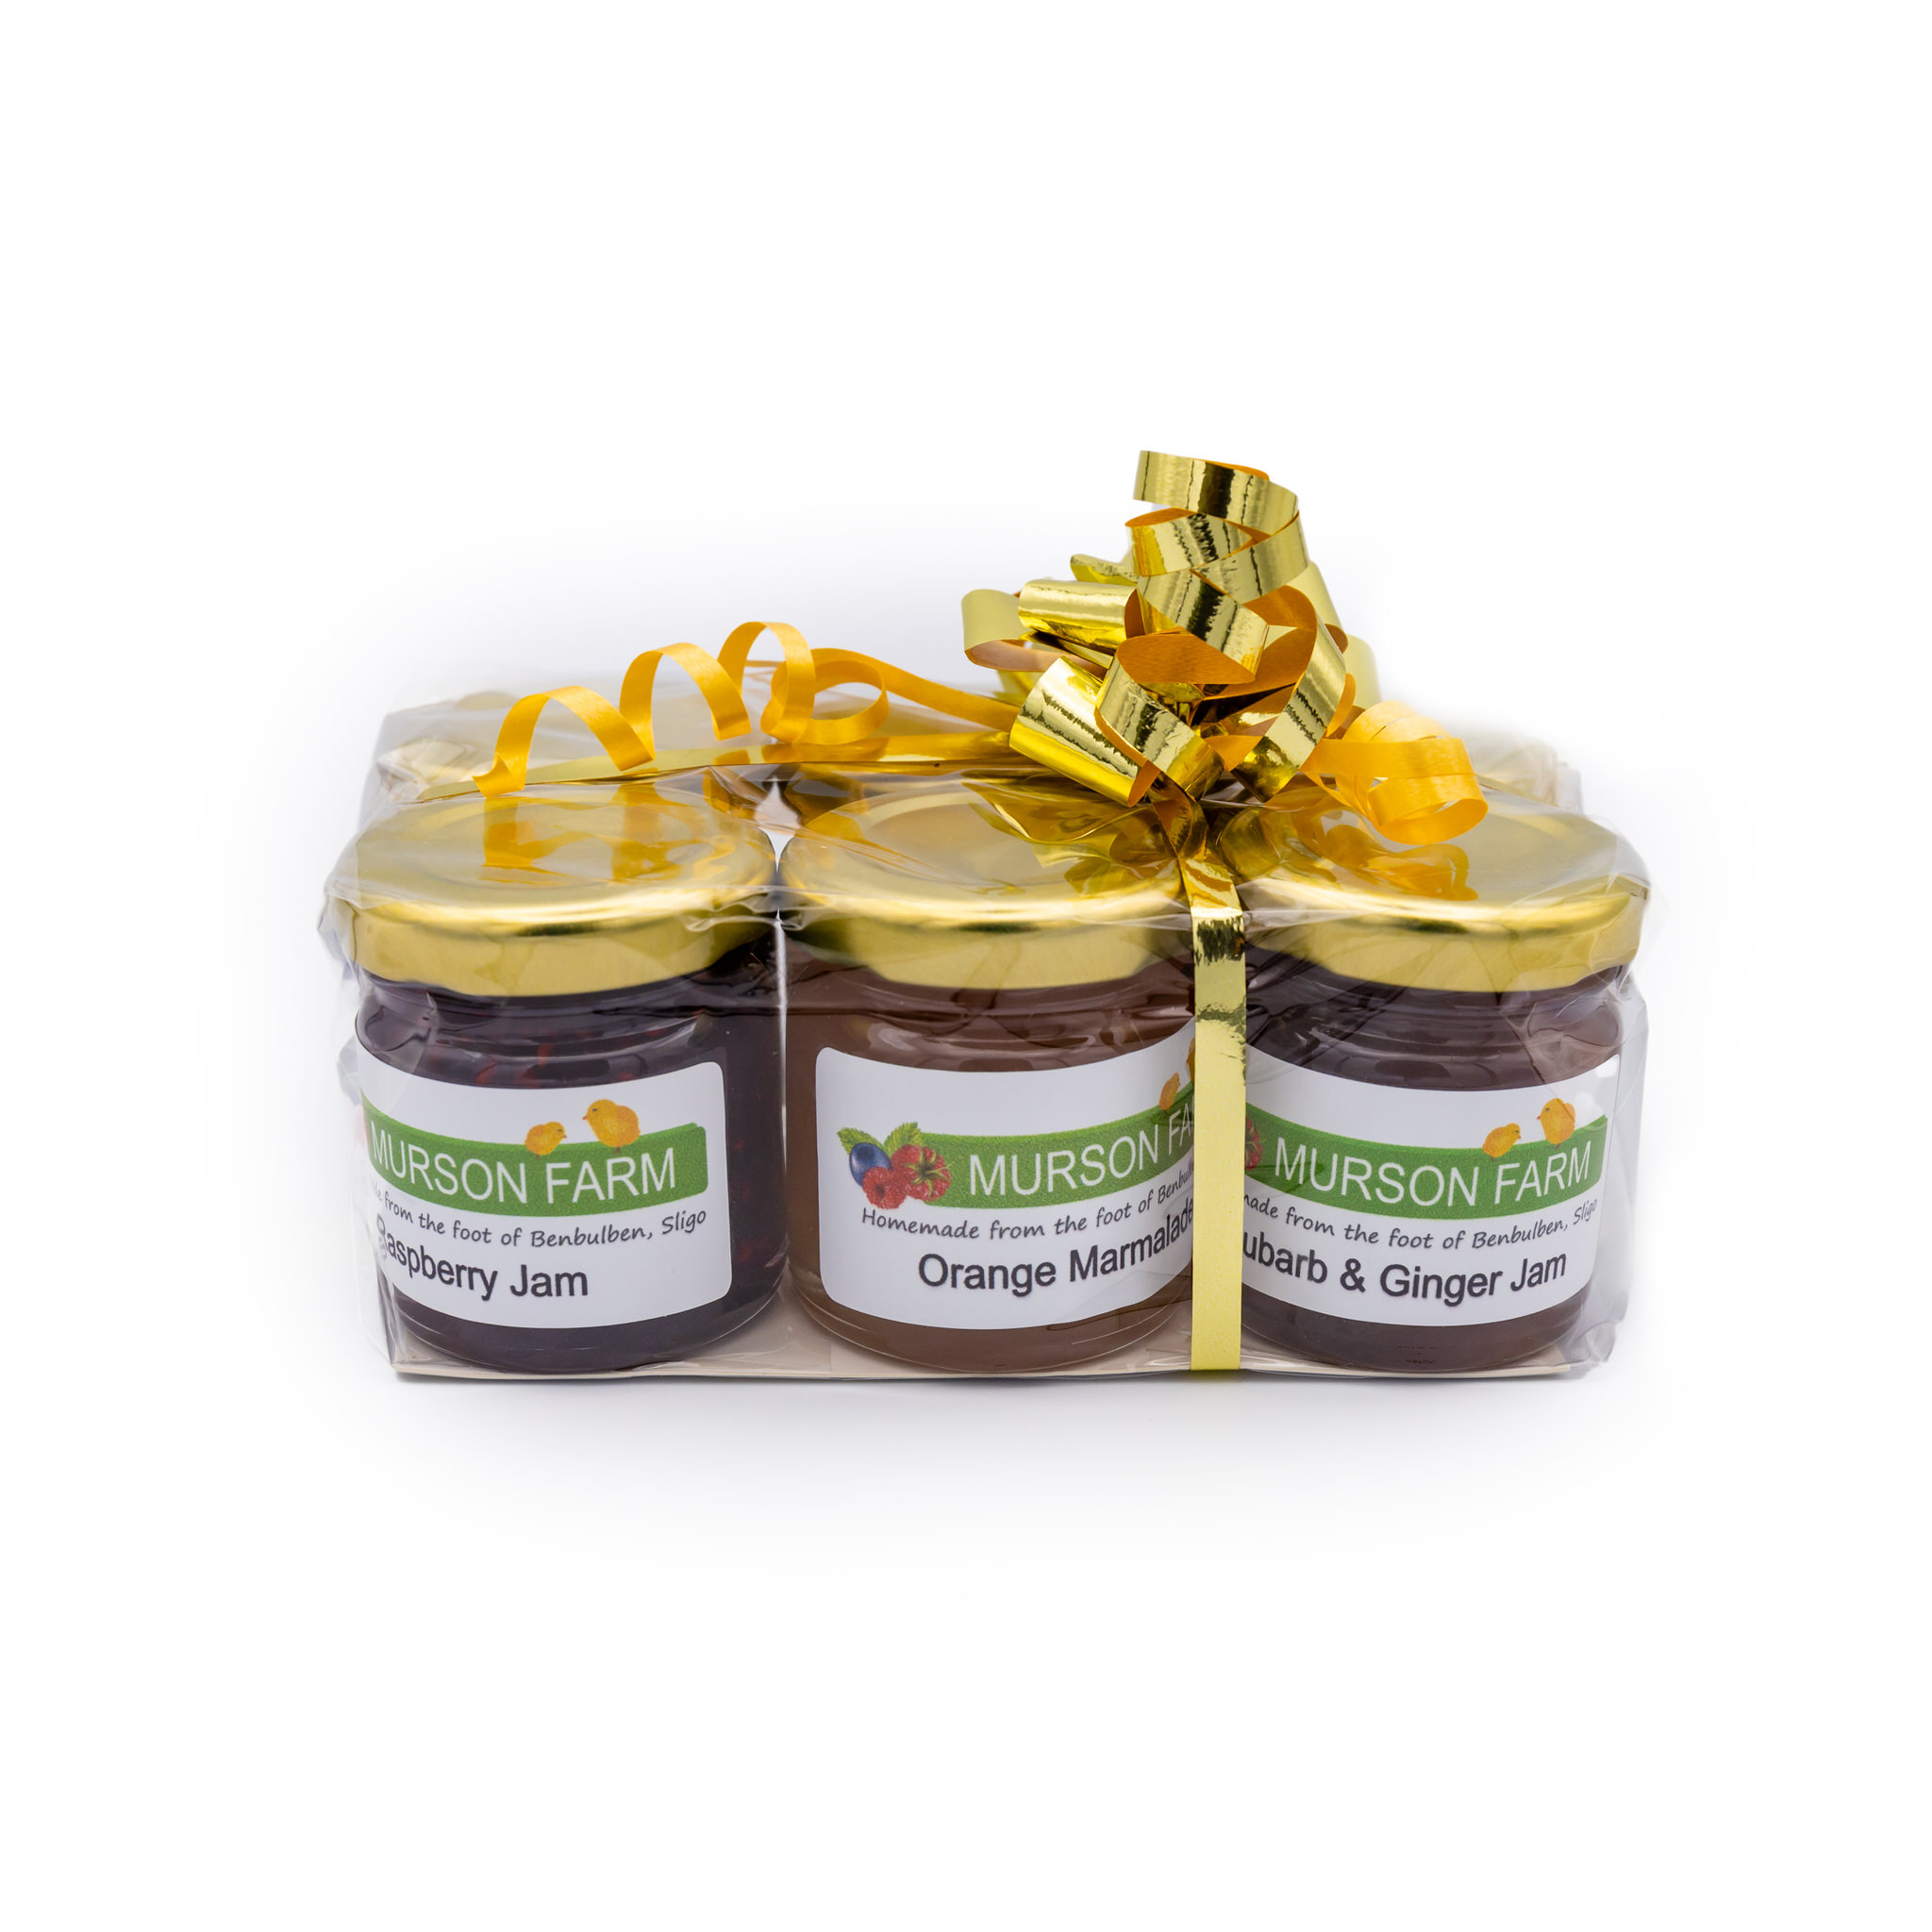 Six Pack of Assorted Jams and Marmalade